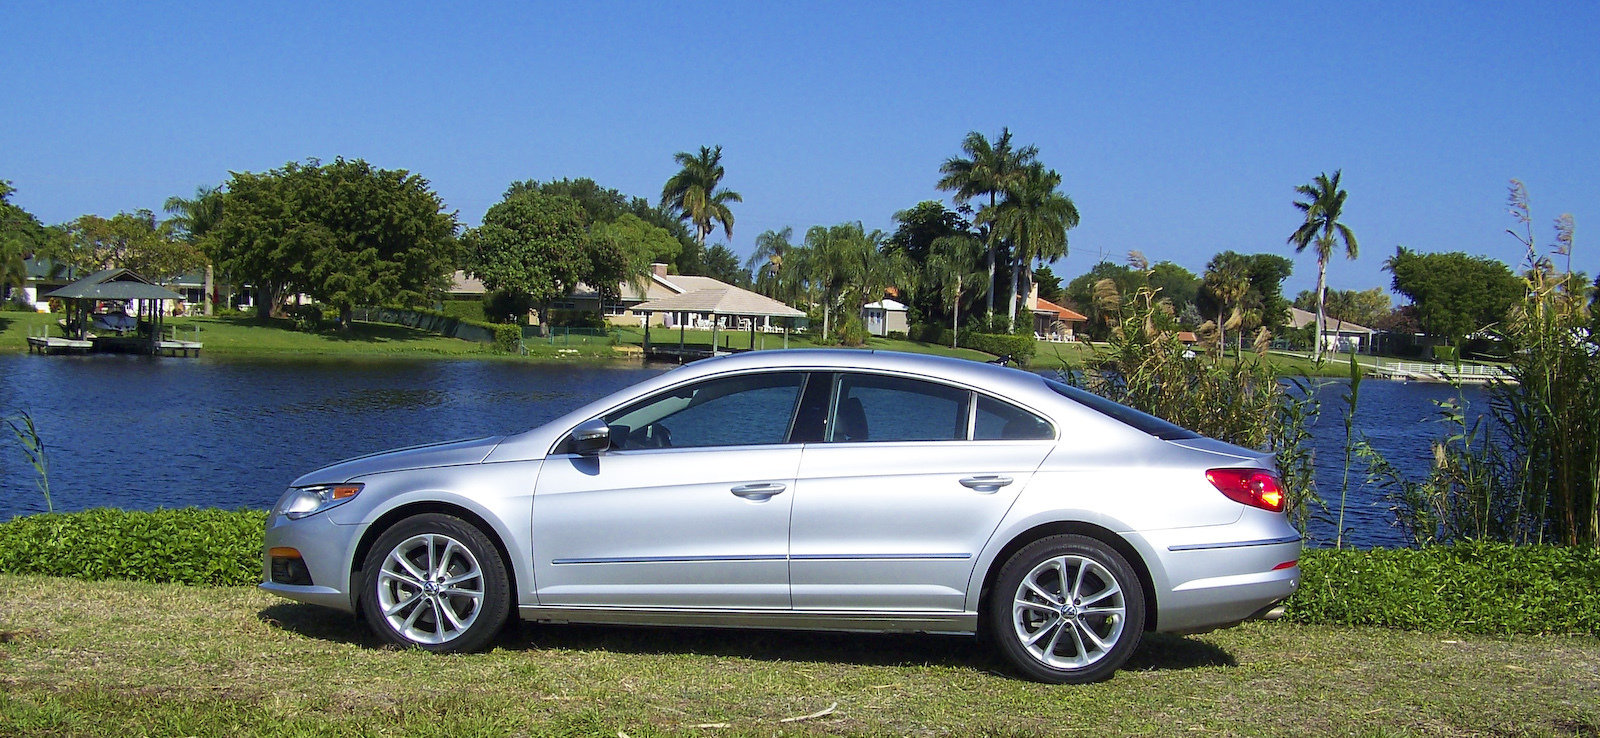 2009 volkswagen cc luxury picture 301085 car review. Black Bedroom Furniture Sets. Home Design Ideas